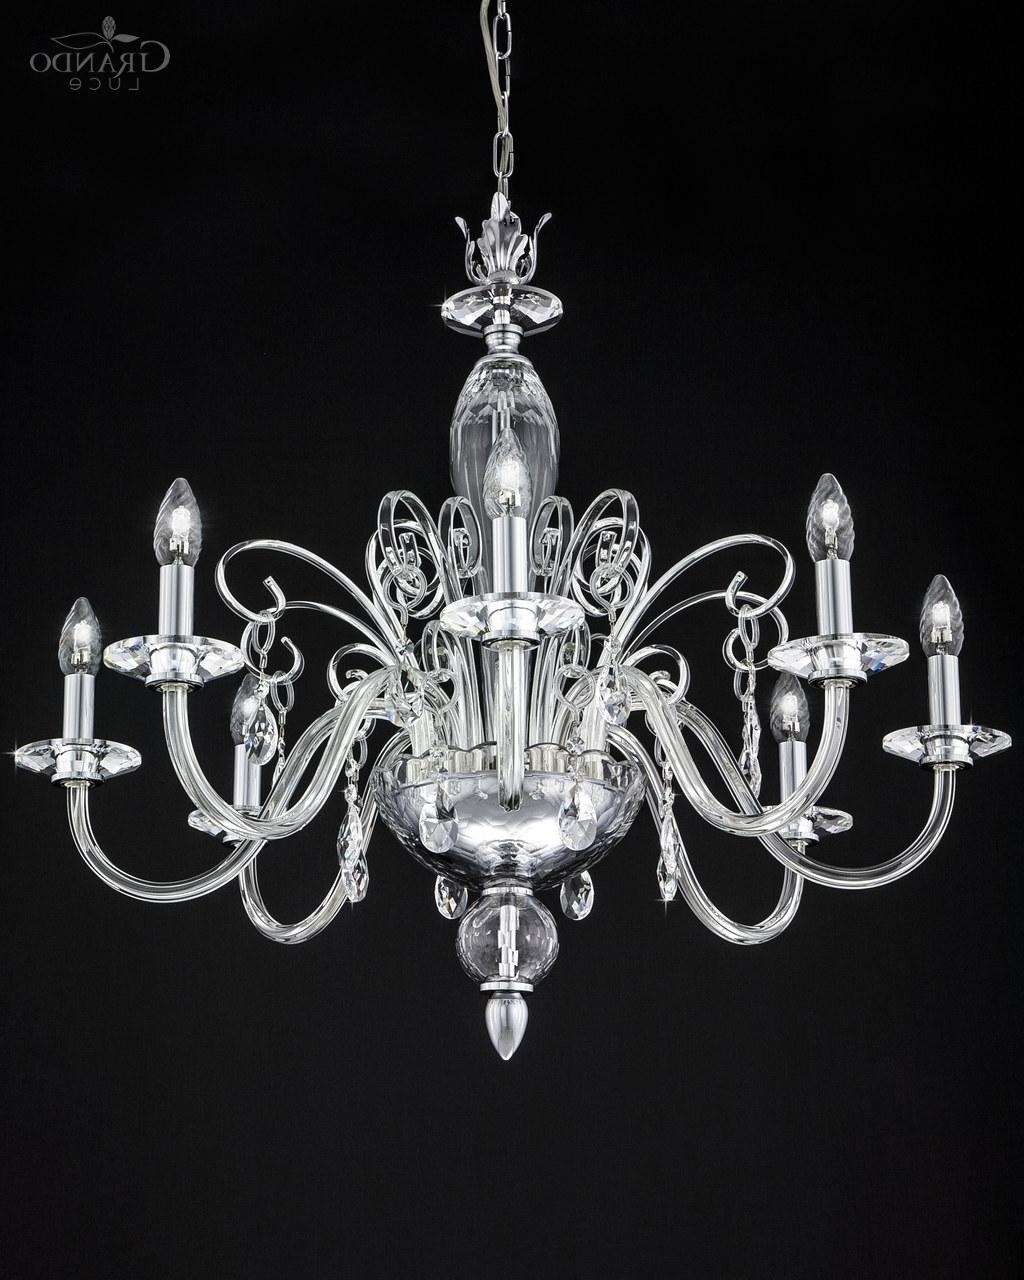 Crystal And Chrome Chandeliers Regarding Most Recently Released 120/ch 8 Chrome Crystal Chandelier With Swarovski Elements (View 12 of 20)